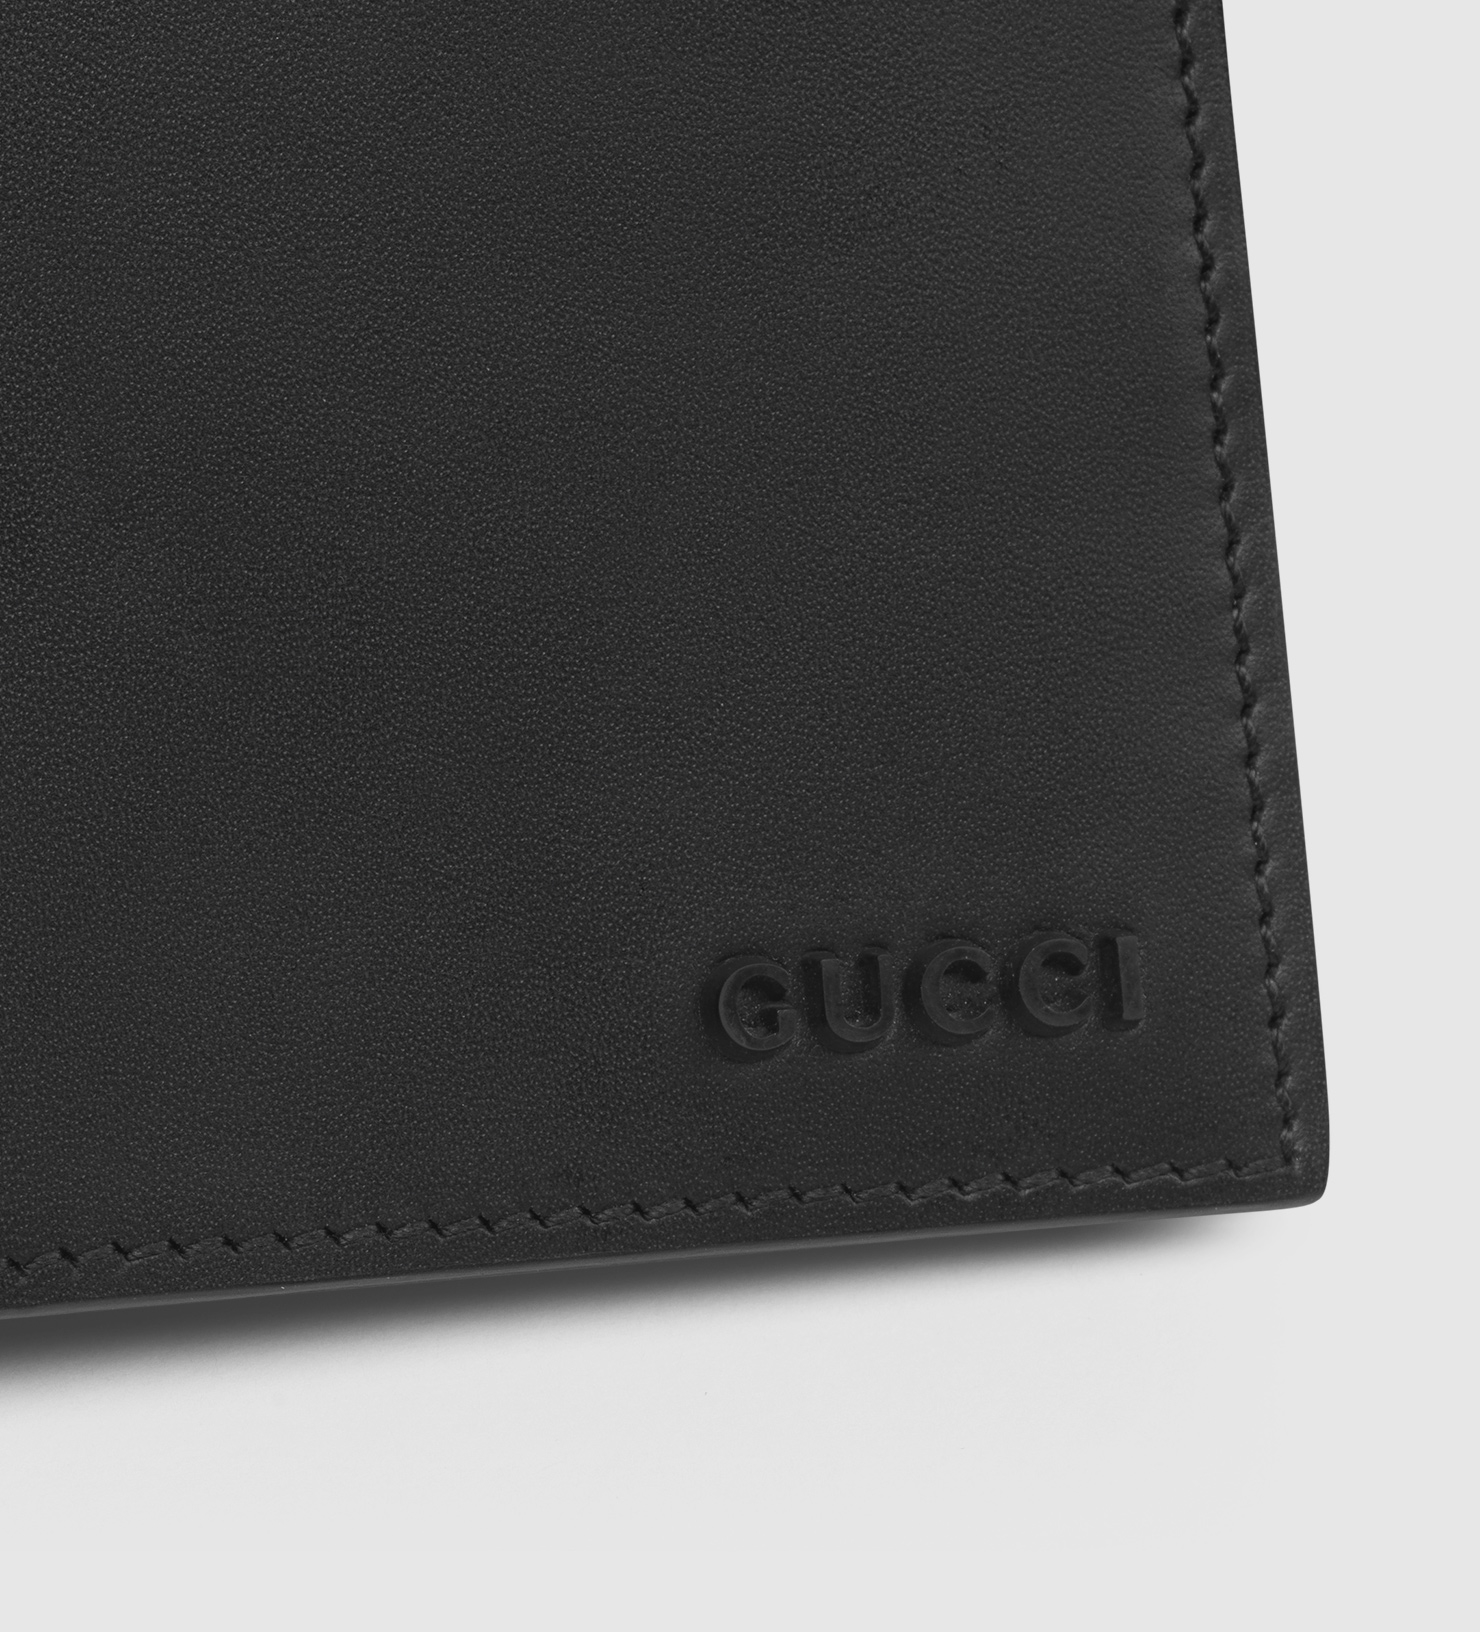 a184b2a3cd6 Gucci Black Leather Wallet - Best Photo Wallet Justiceforkenny.Org